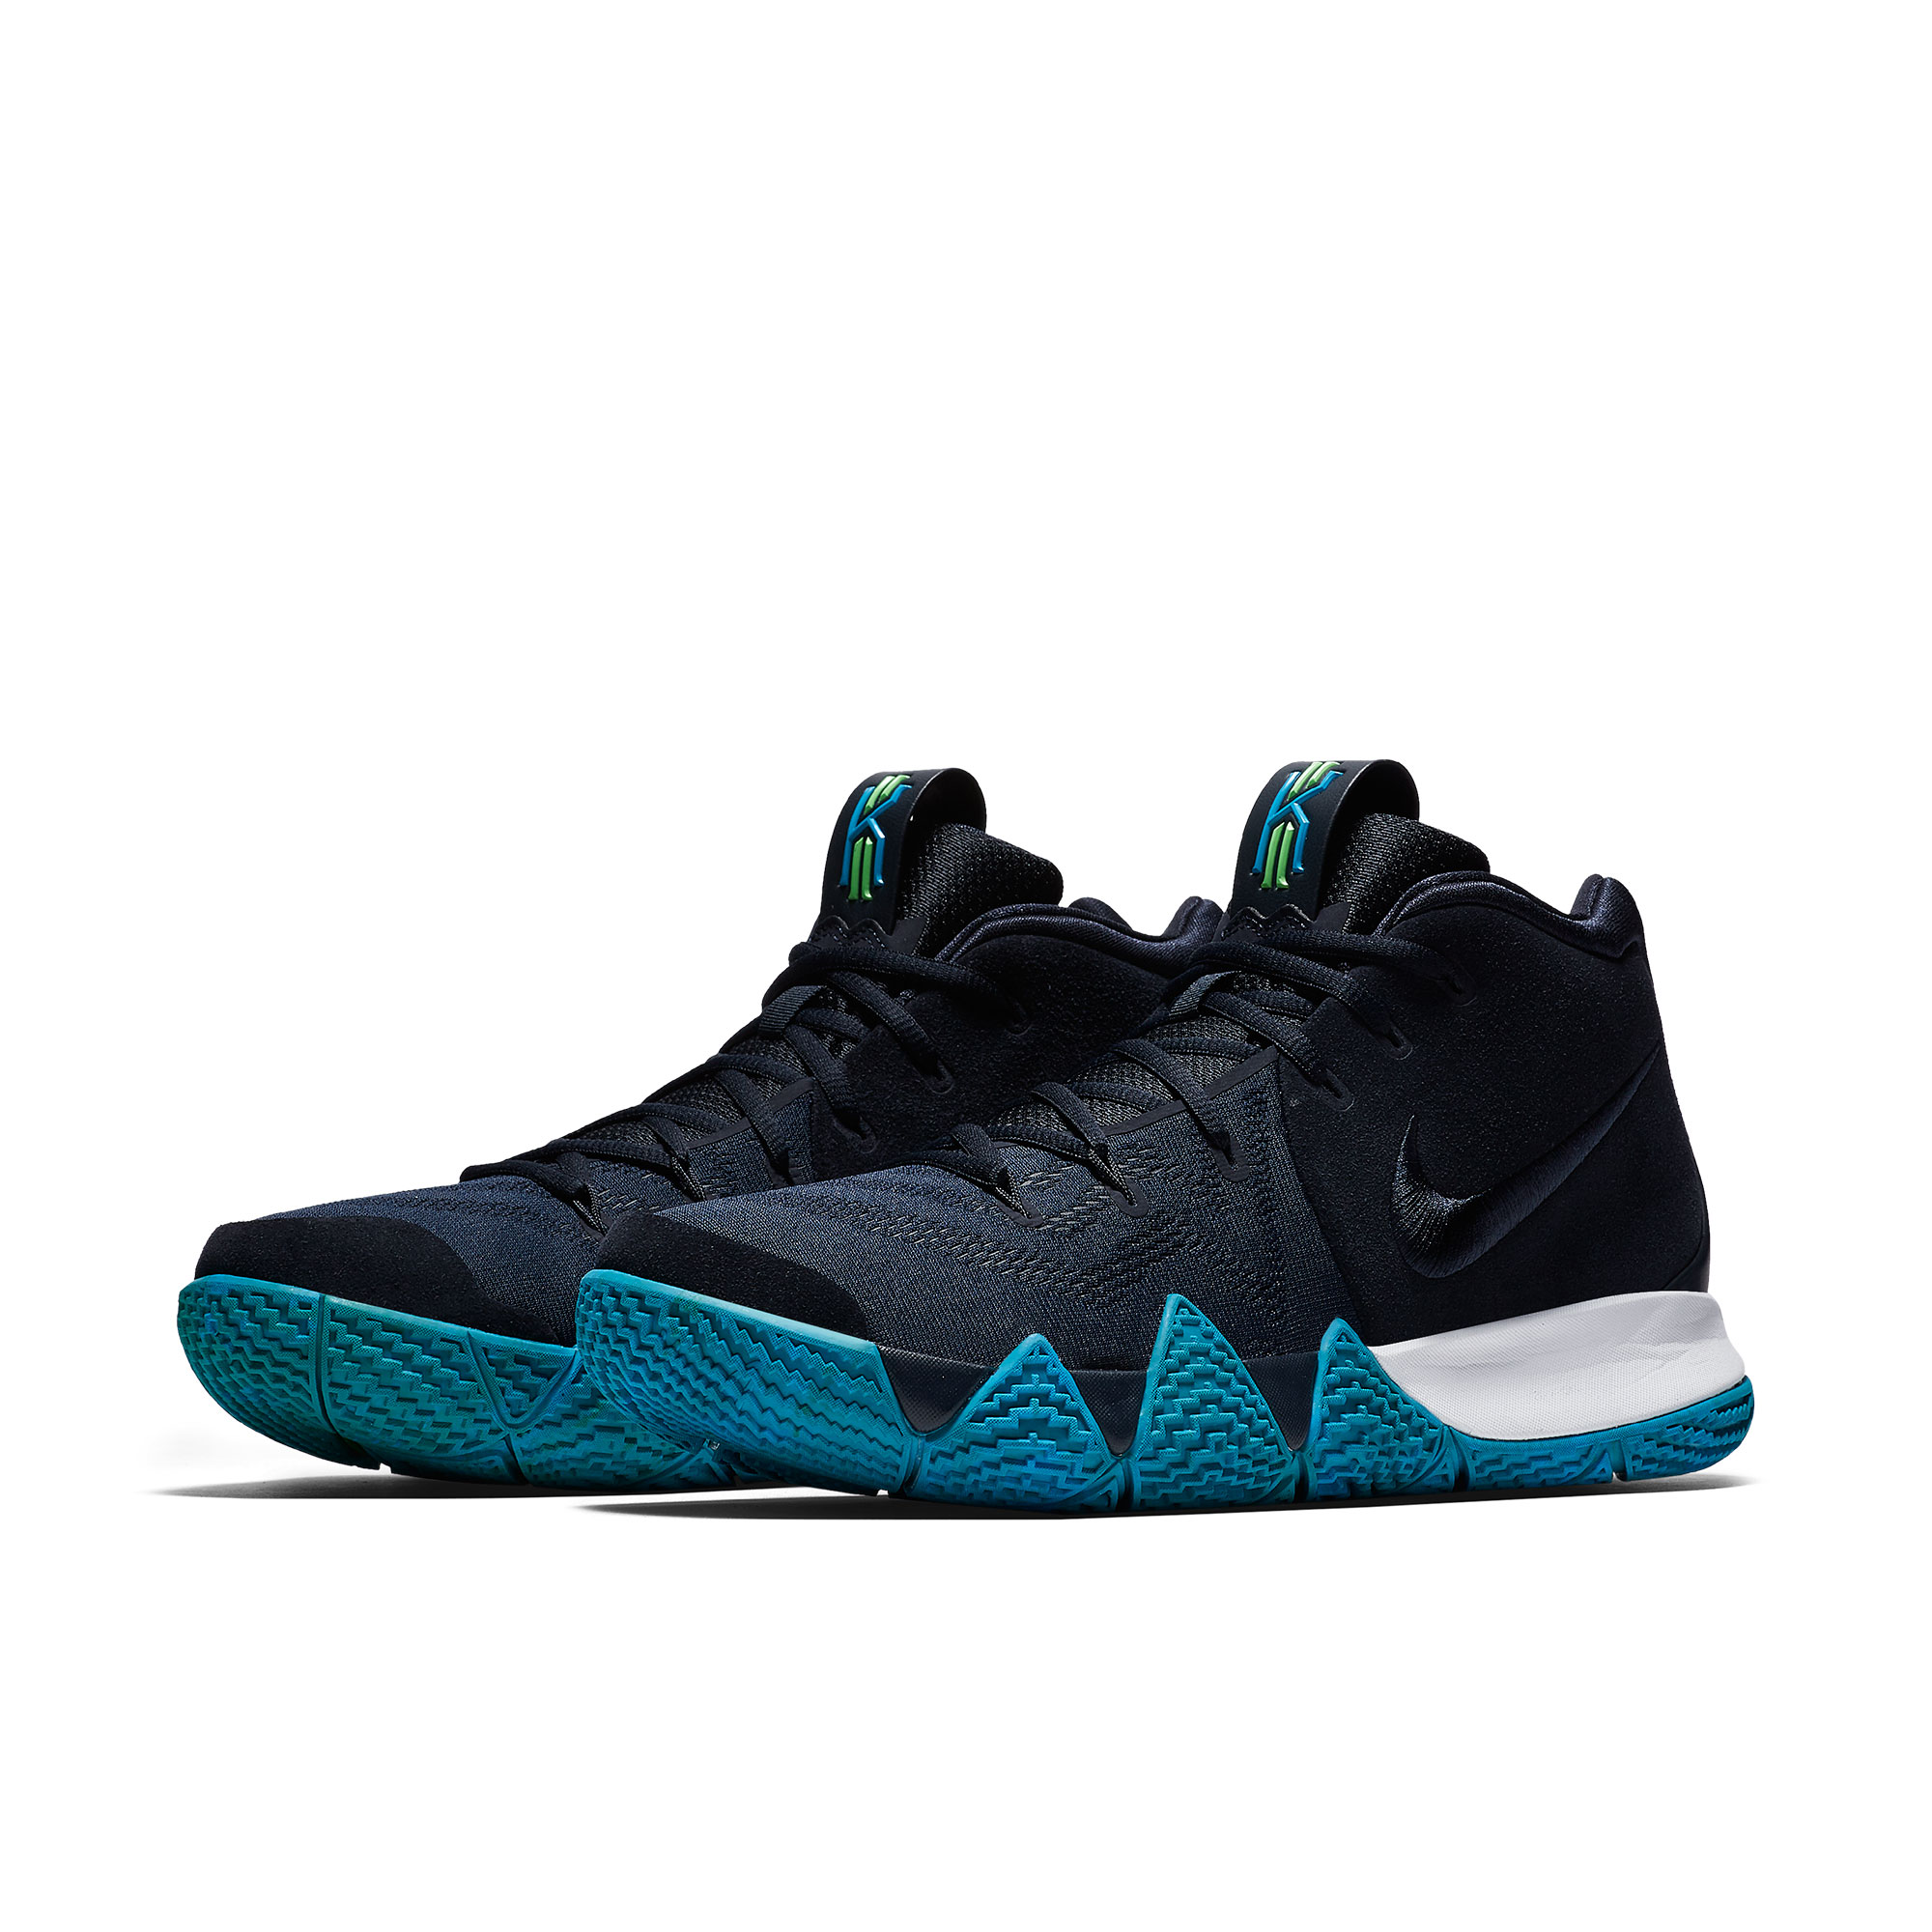 f2d3986bf41 Original New Authentic NIKE KYRIE 4 EPmens Breathable Basketball Shoes  943807 Medium Cut Hiking Sport Outdoor Sneakers for Men